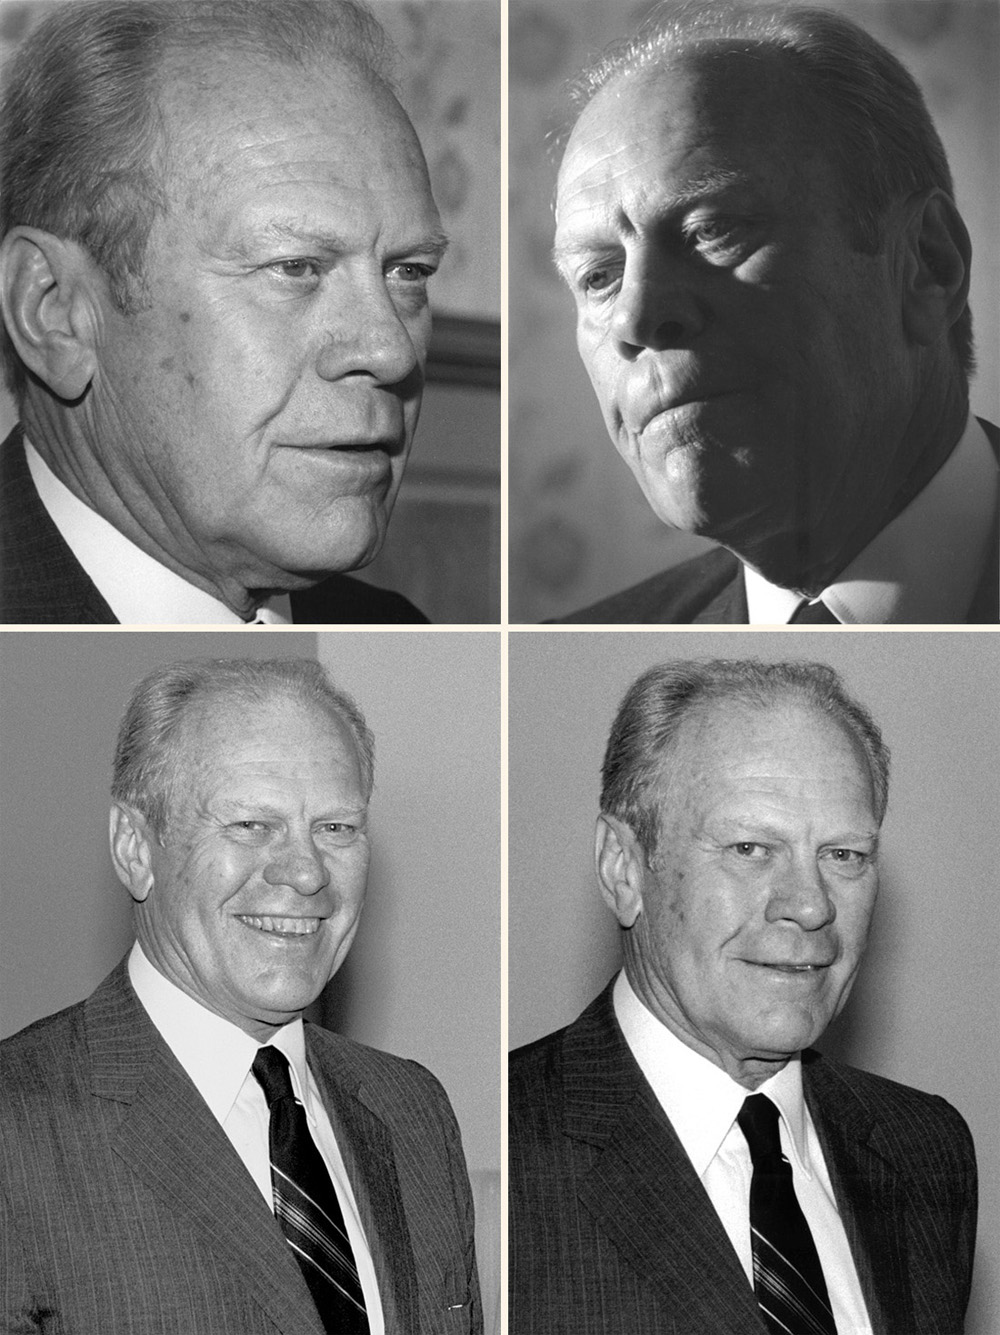 Mobile Alabama photographer Adrian Hoff's photos of President Gerald Ford.